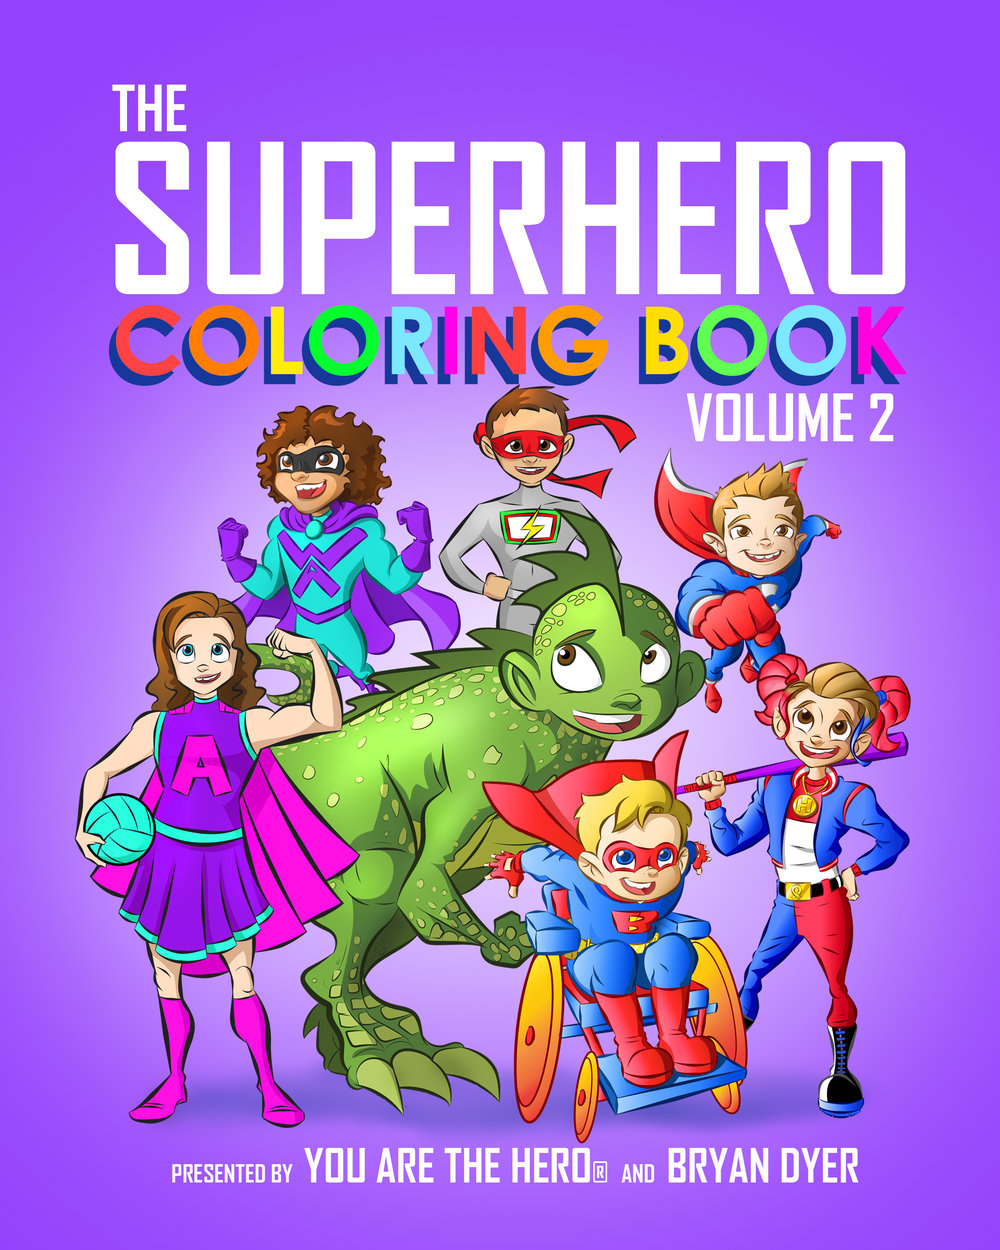 The Superhero Coloring Book: Volume 2 — You Are the Hero